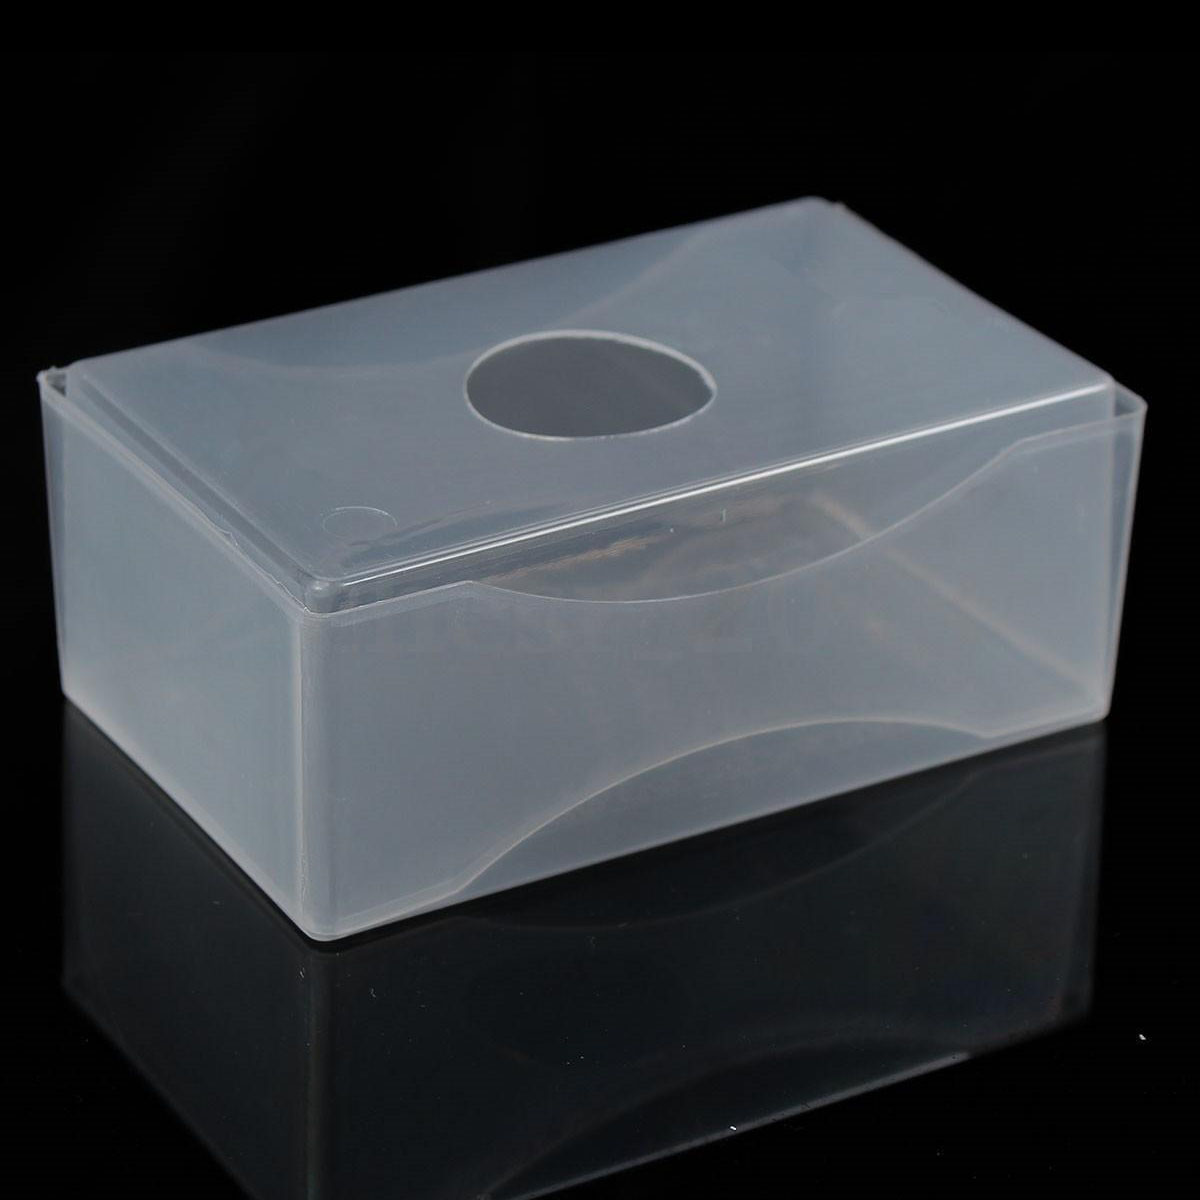 Wholesale 5pcs of 10 x business card box plastic holders clear craft wholesale 5pcs of 10 x business card box plastic holders clear craft beads container storage boxes white in business cards from office school supplies on colourmoves